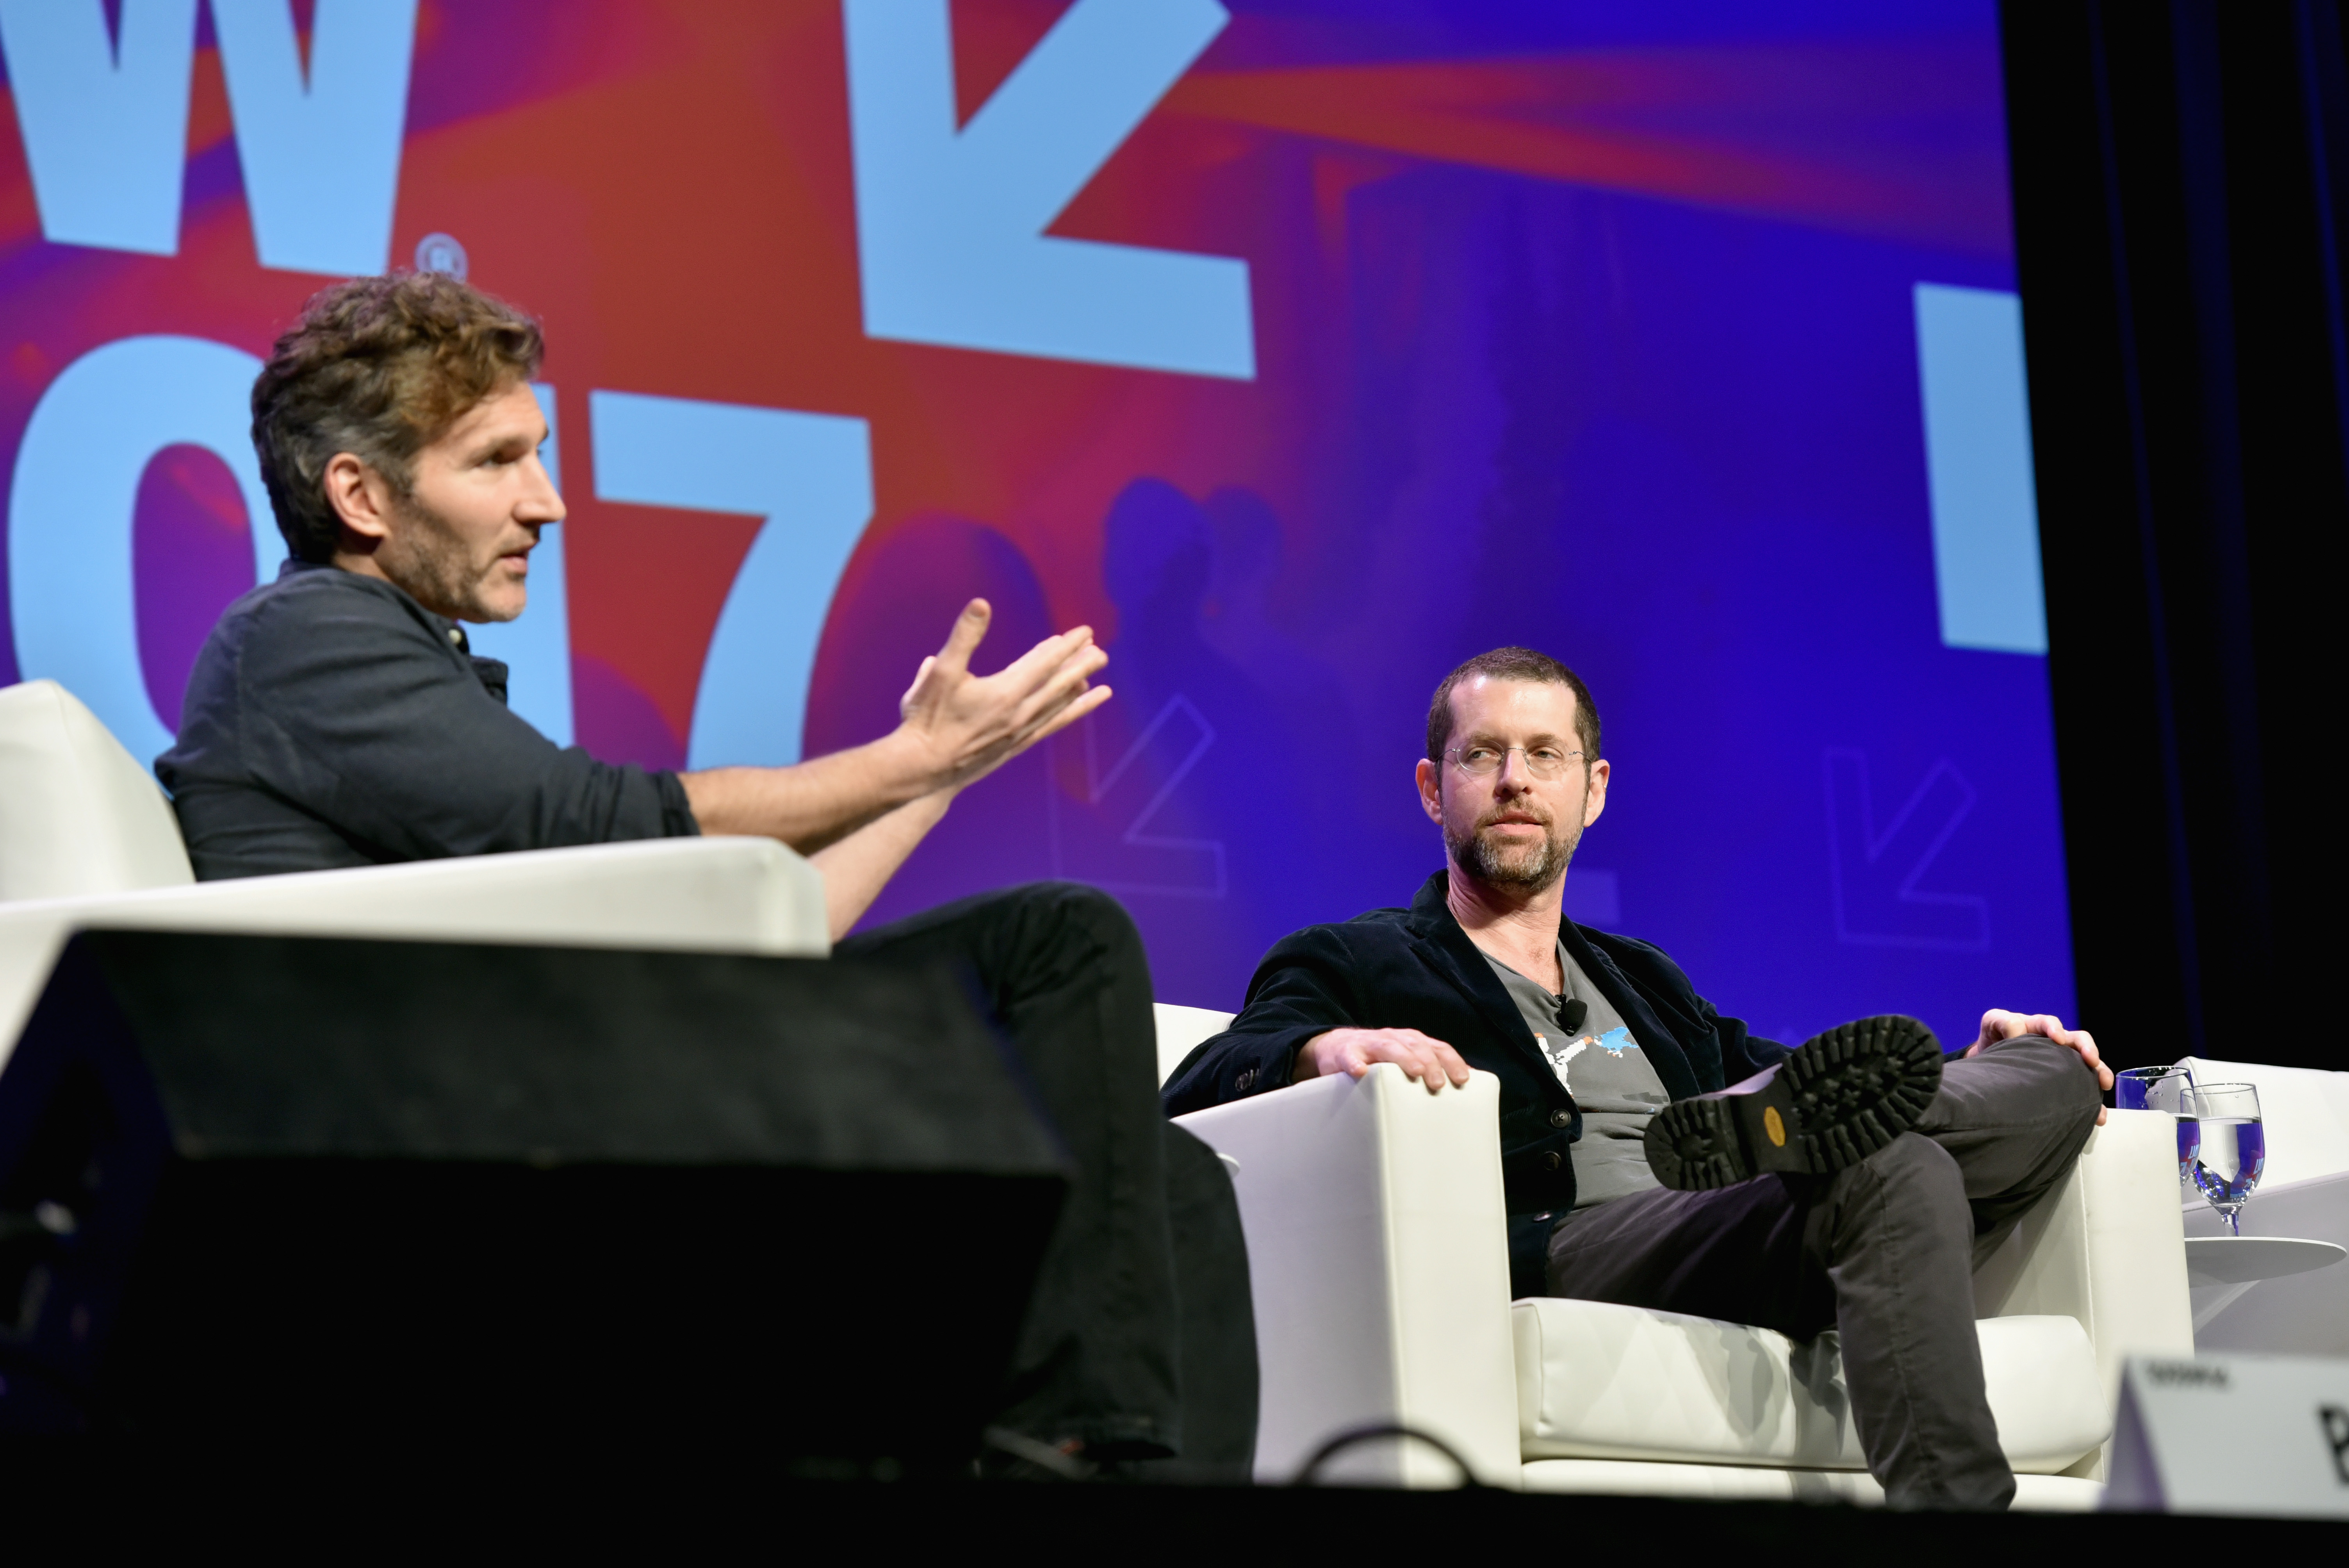 Writers David Benioff (L) and  D.B. Weiss speak onstage at 'Featured Session: Game of Thrones' during 2017 SXSW Conference and Festivals at Austin Convention Center on March 12, 2017 in Austin, Texas.